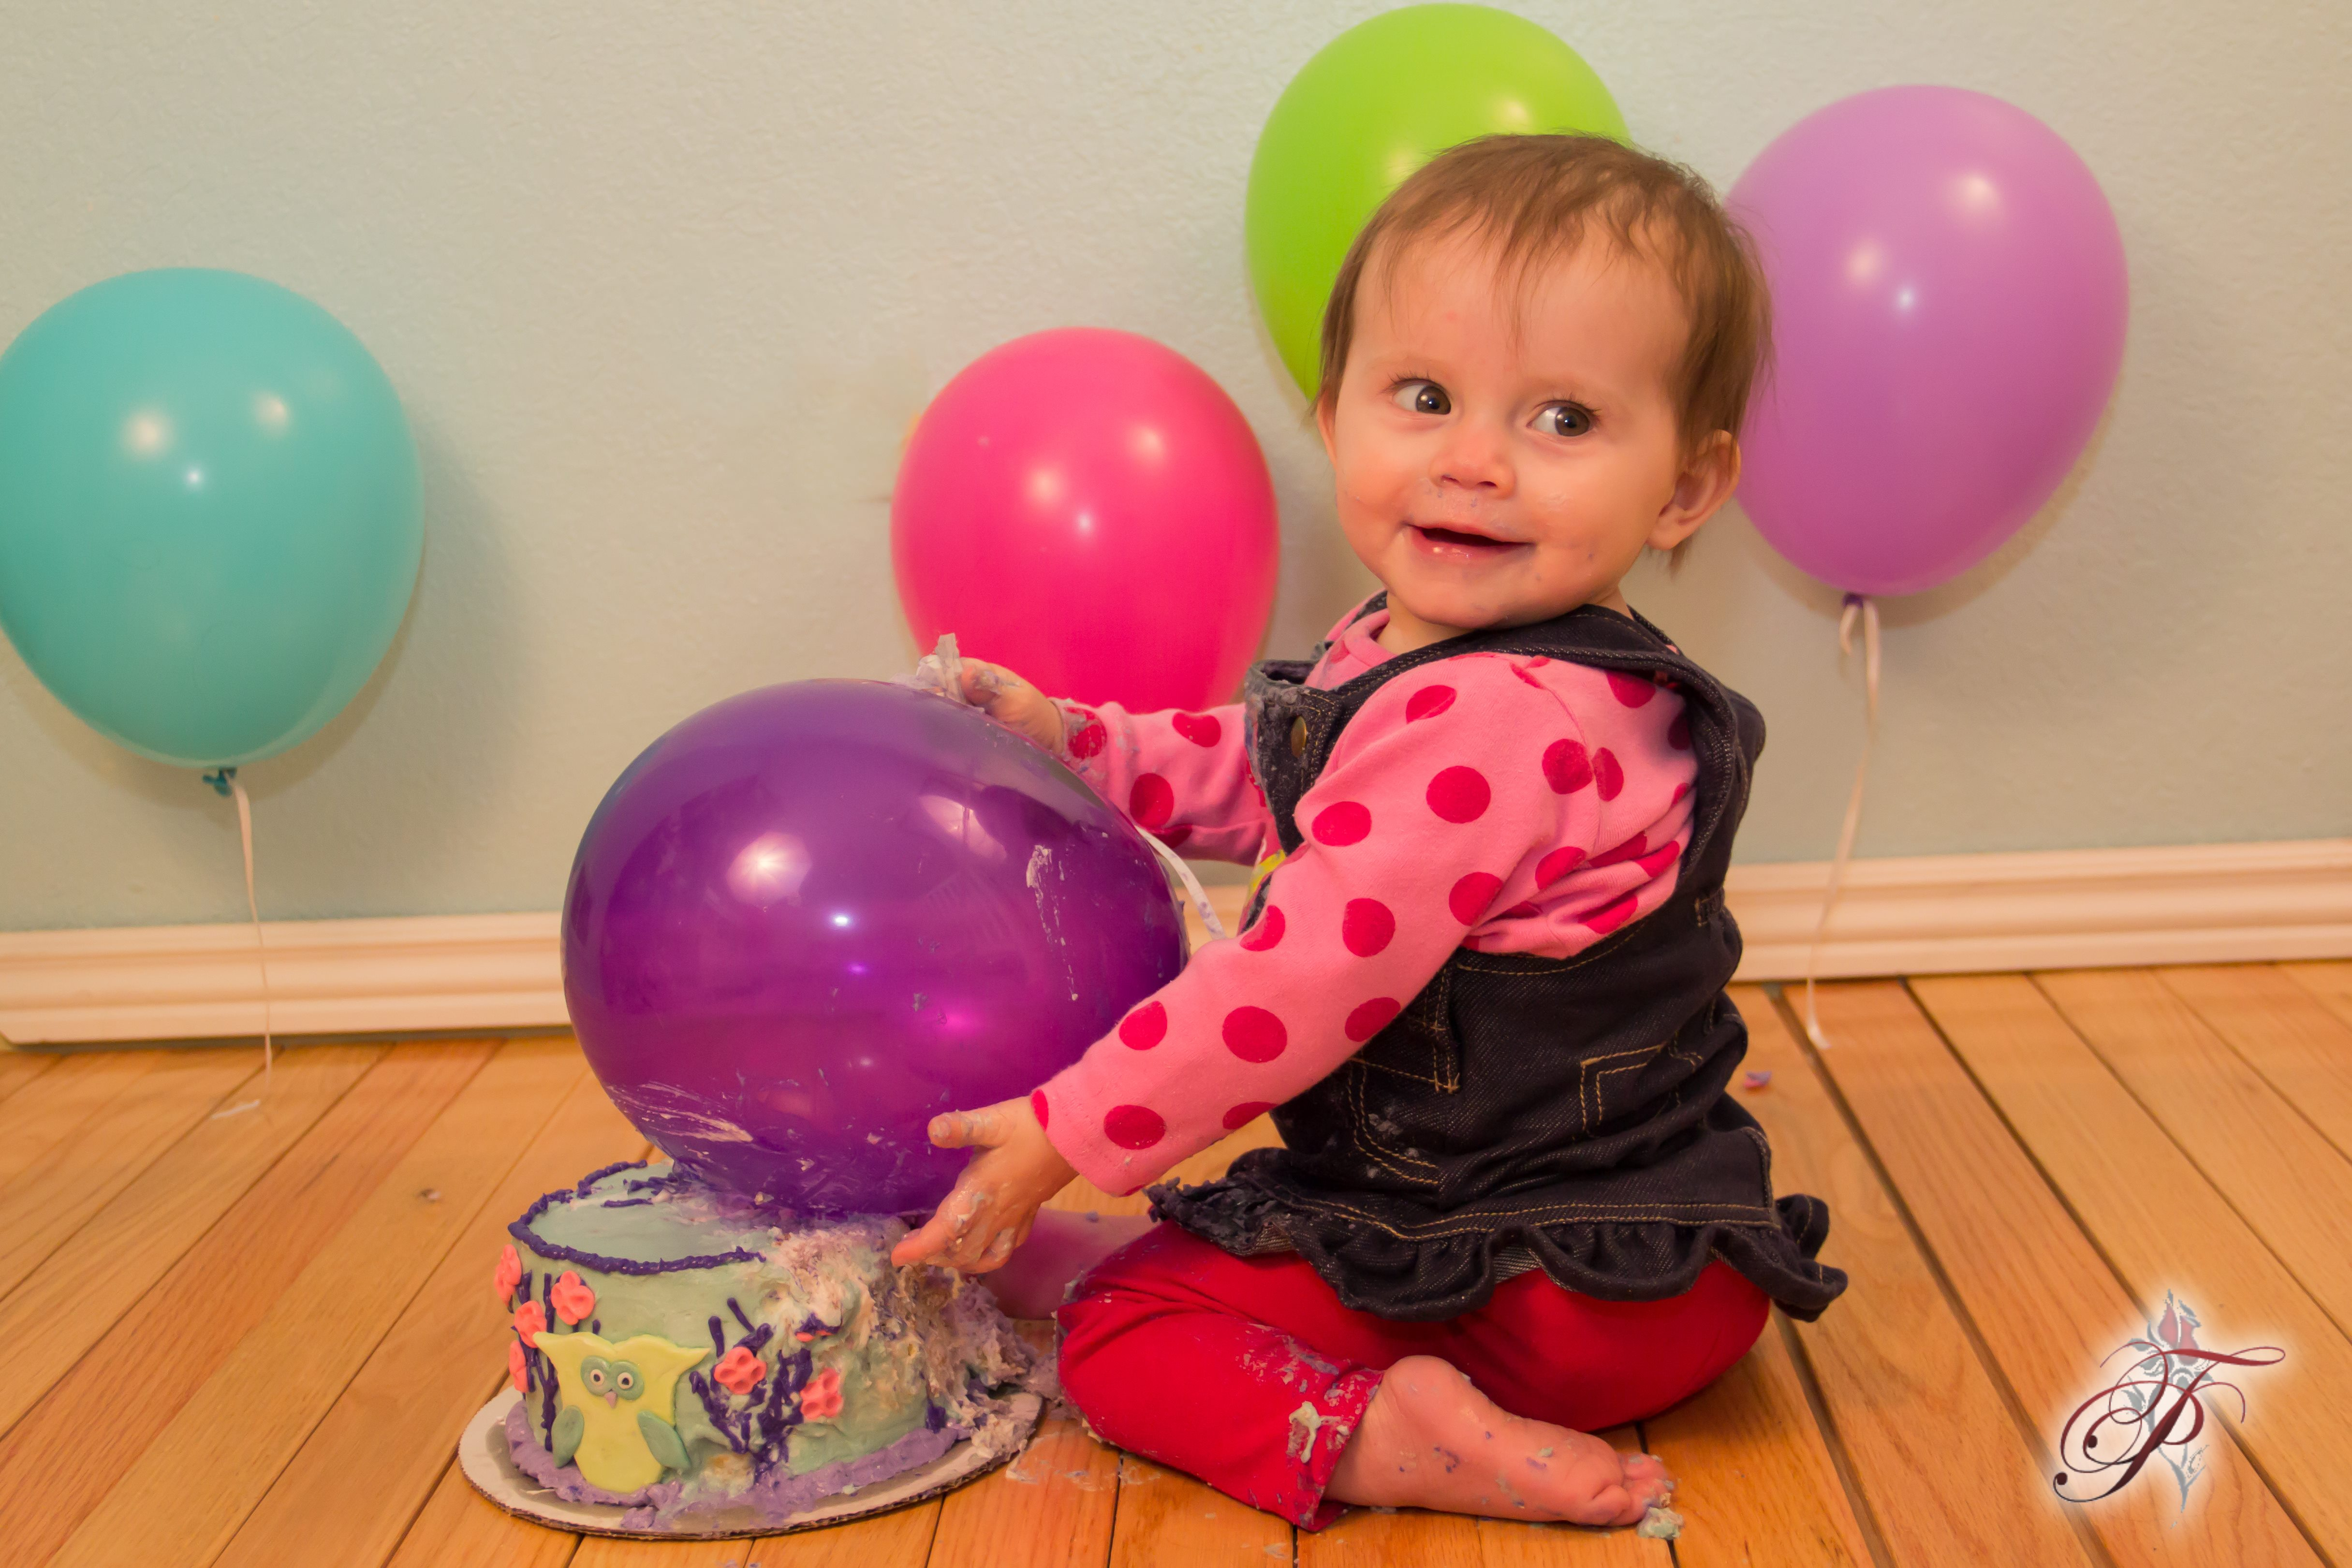 For more information on first birthday/cake smash sessions in the ...